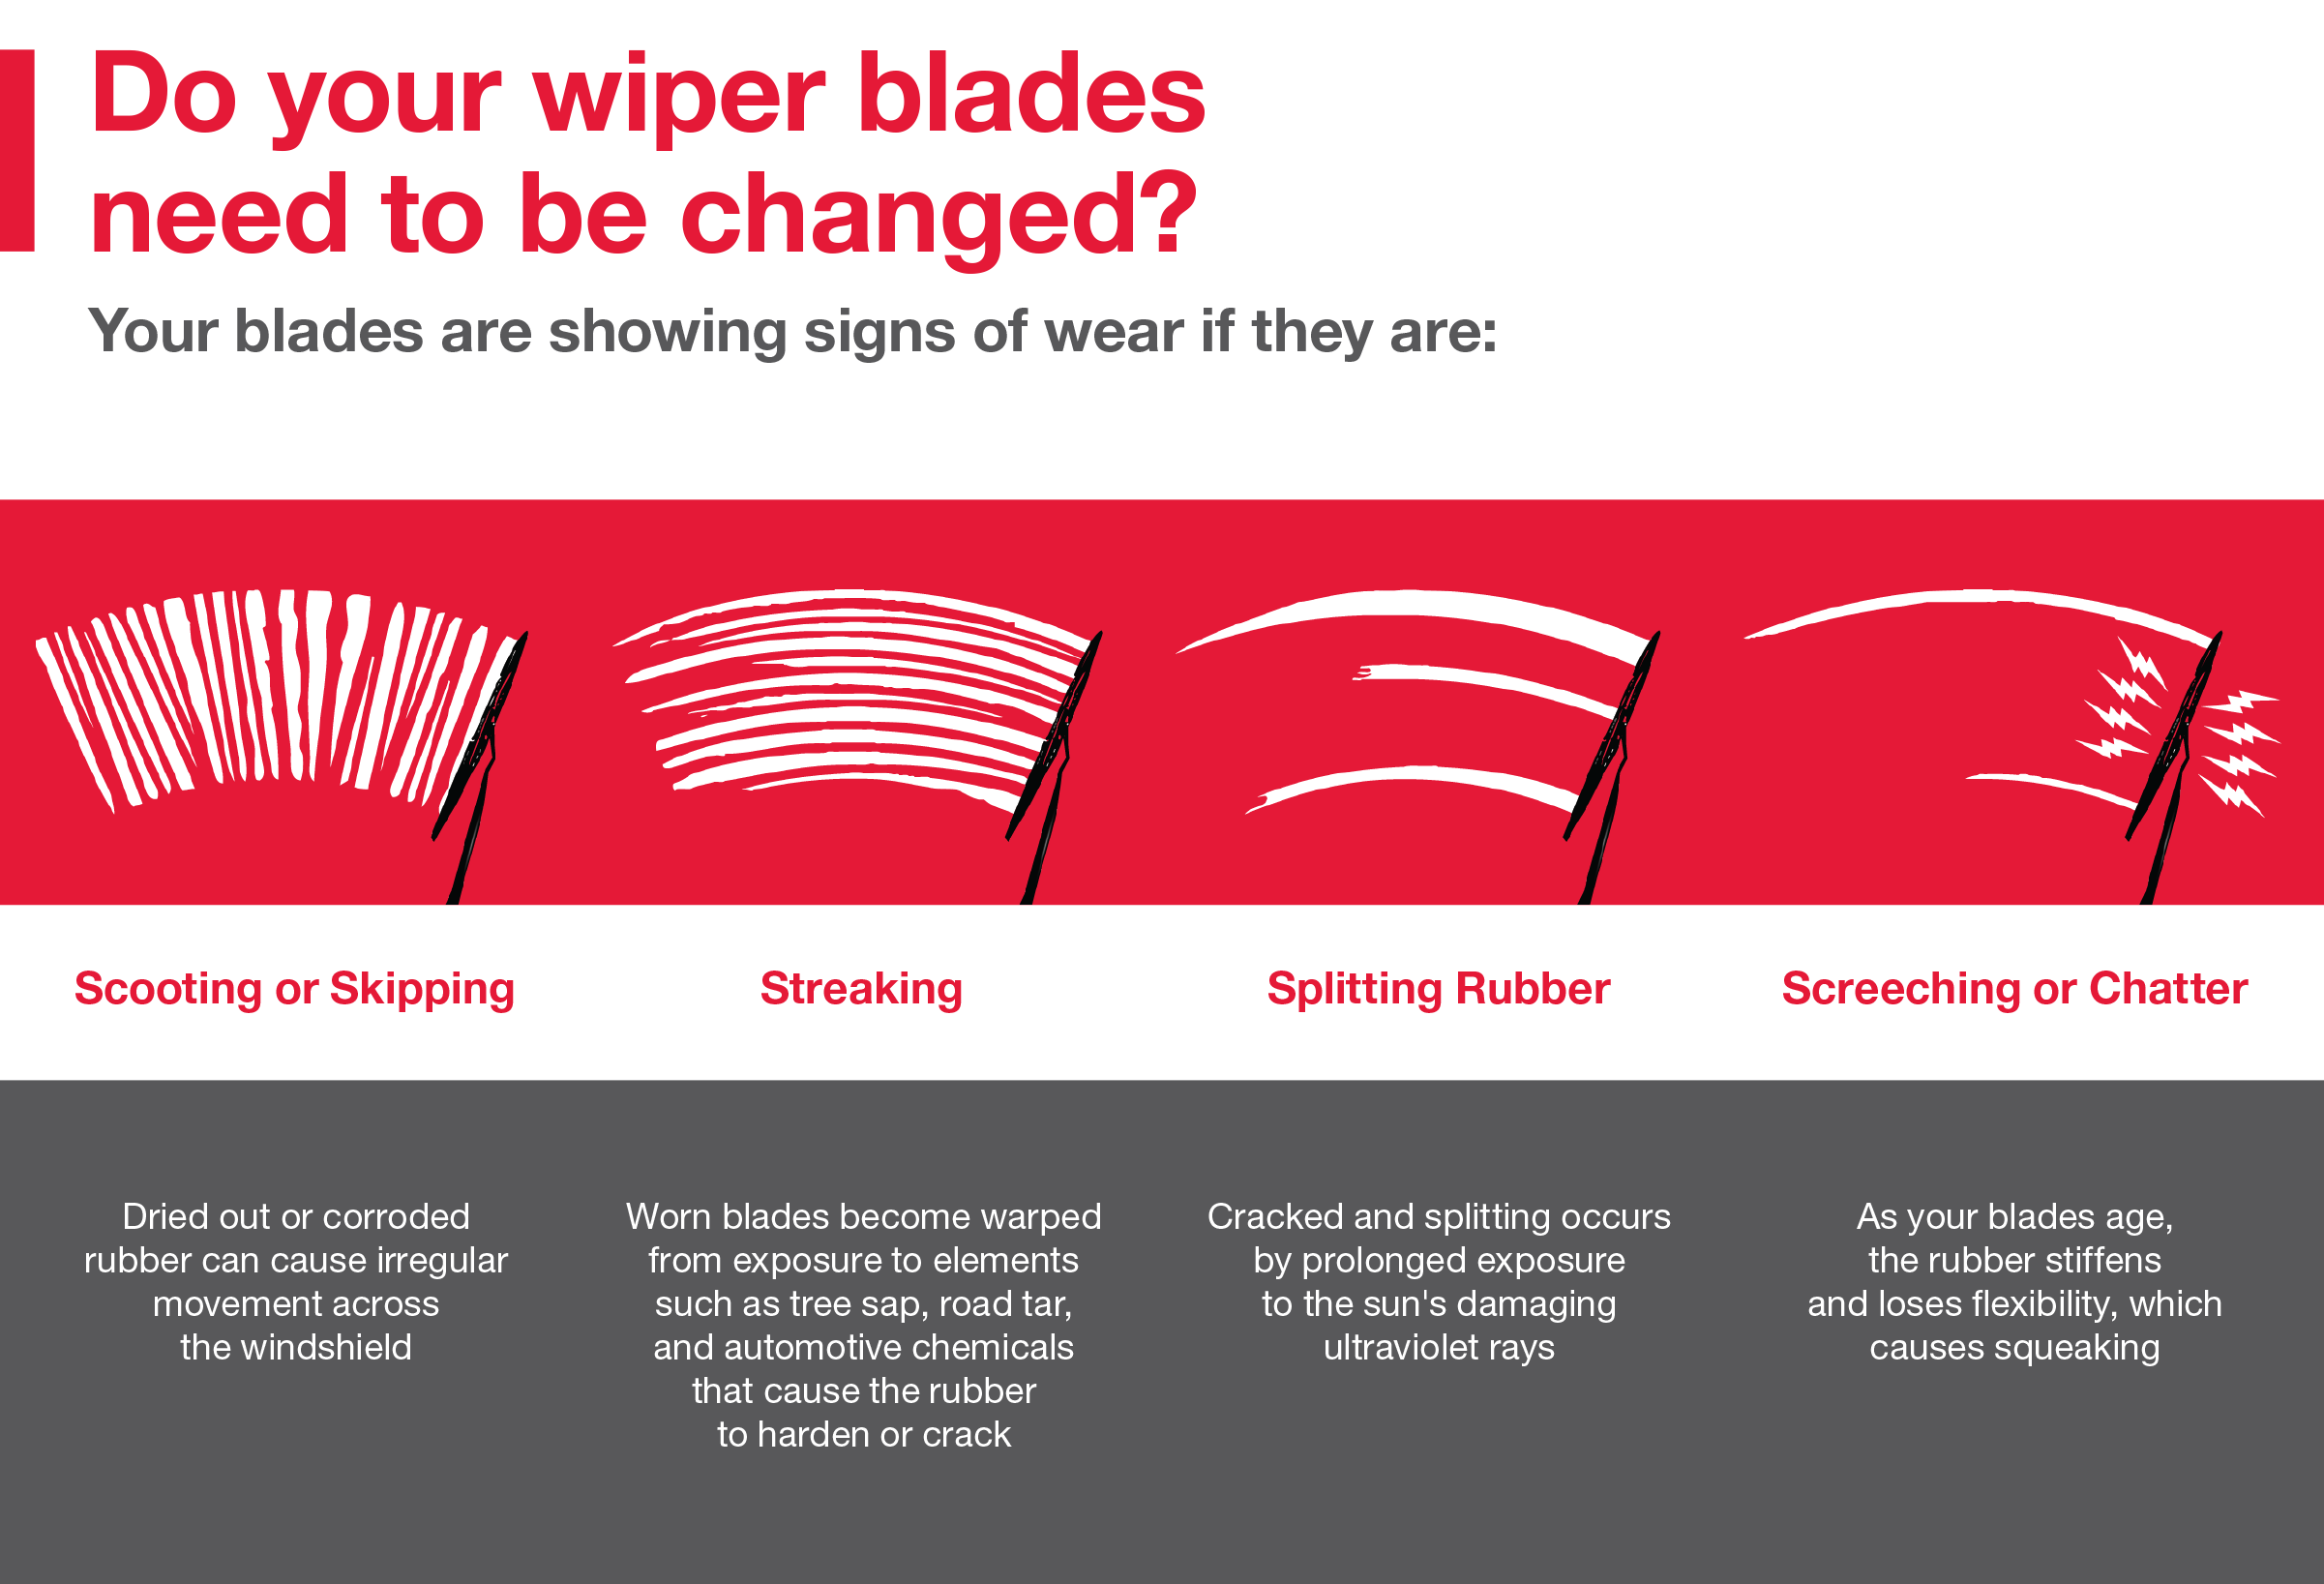 Do your wiper blades need to be changed? Call your local dealer for more info: (317) 548-0109